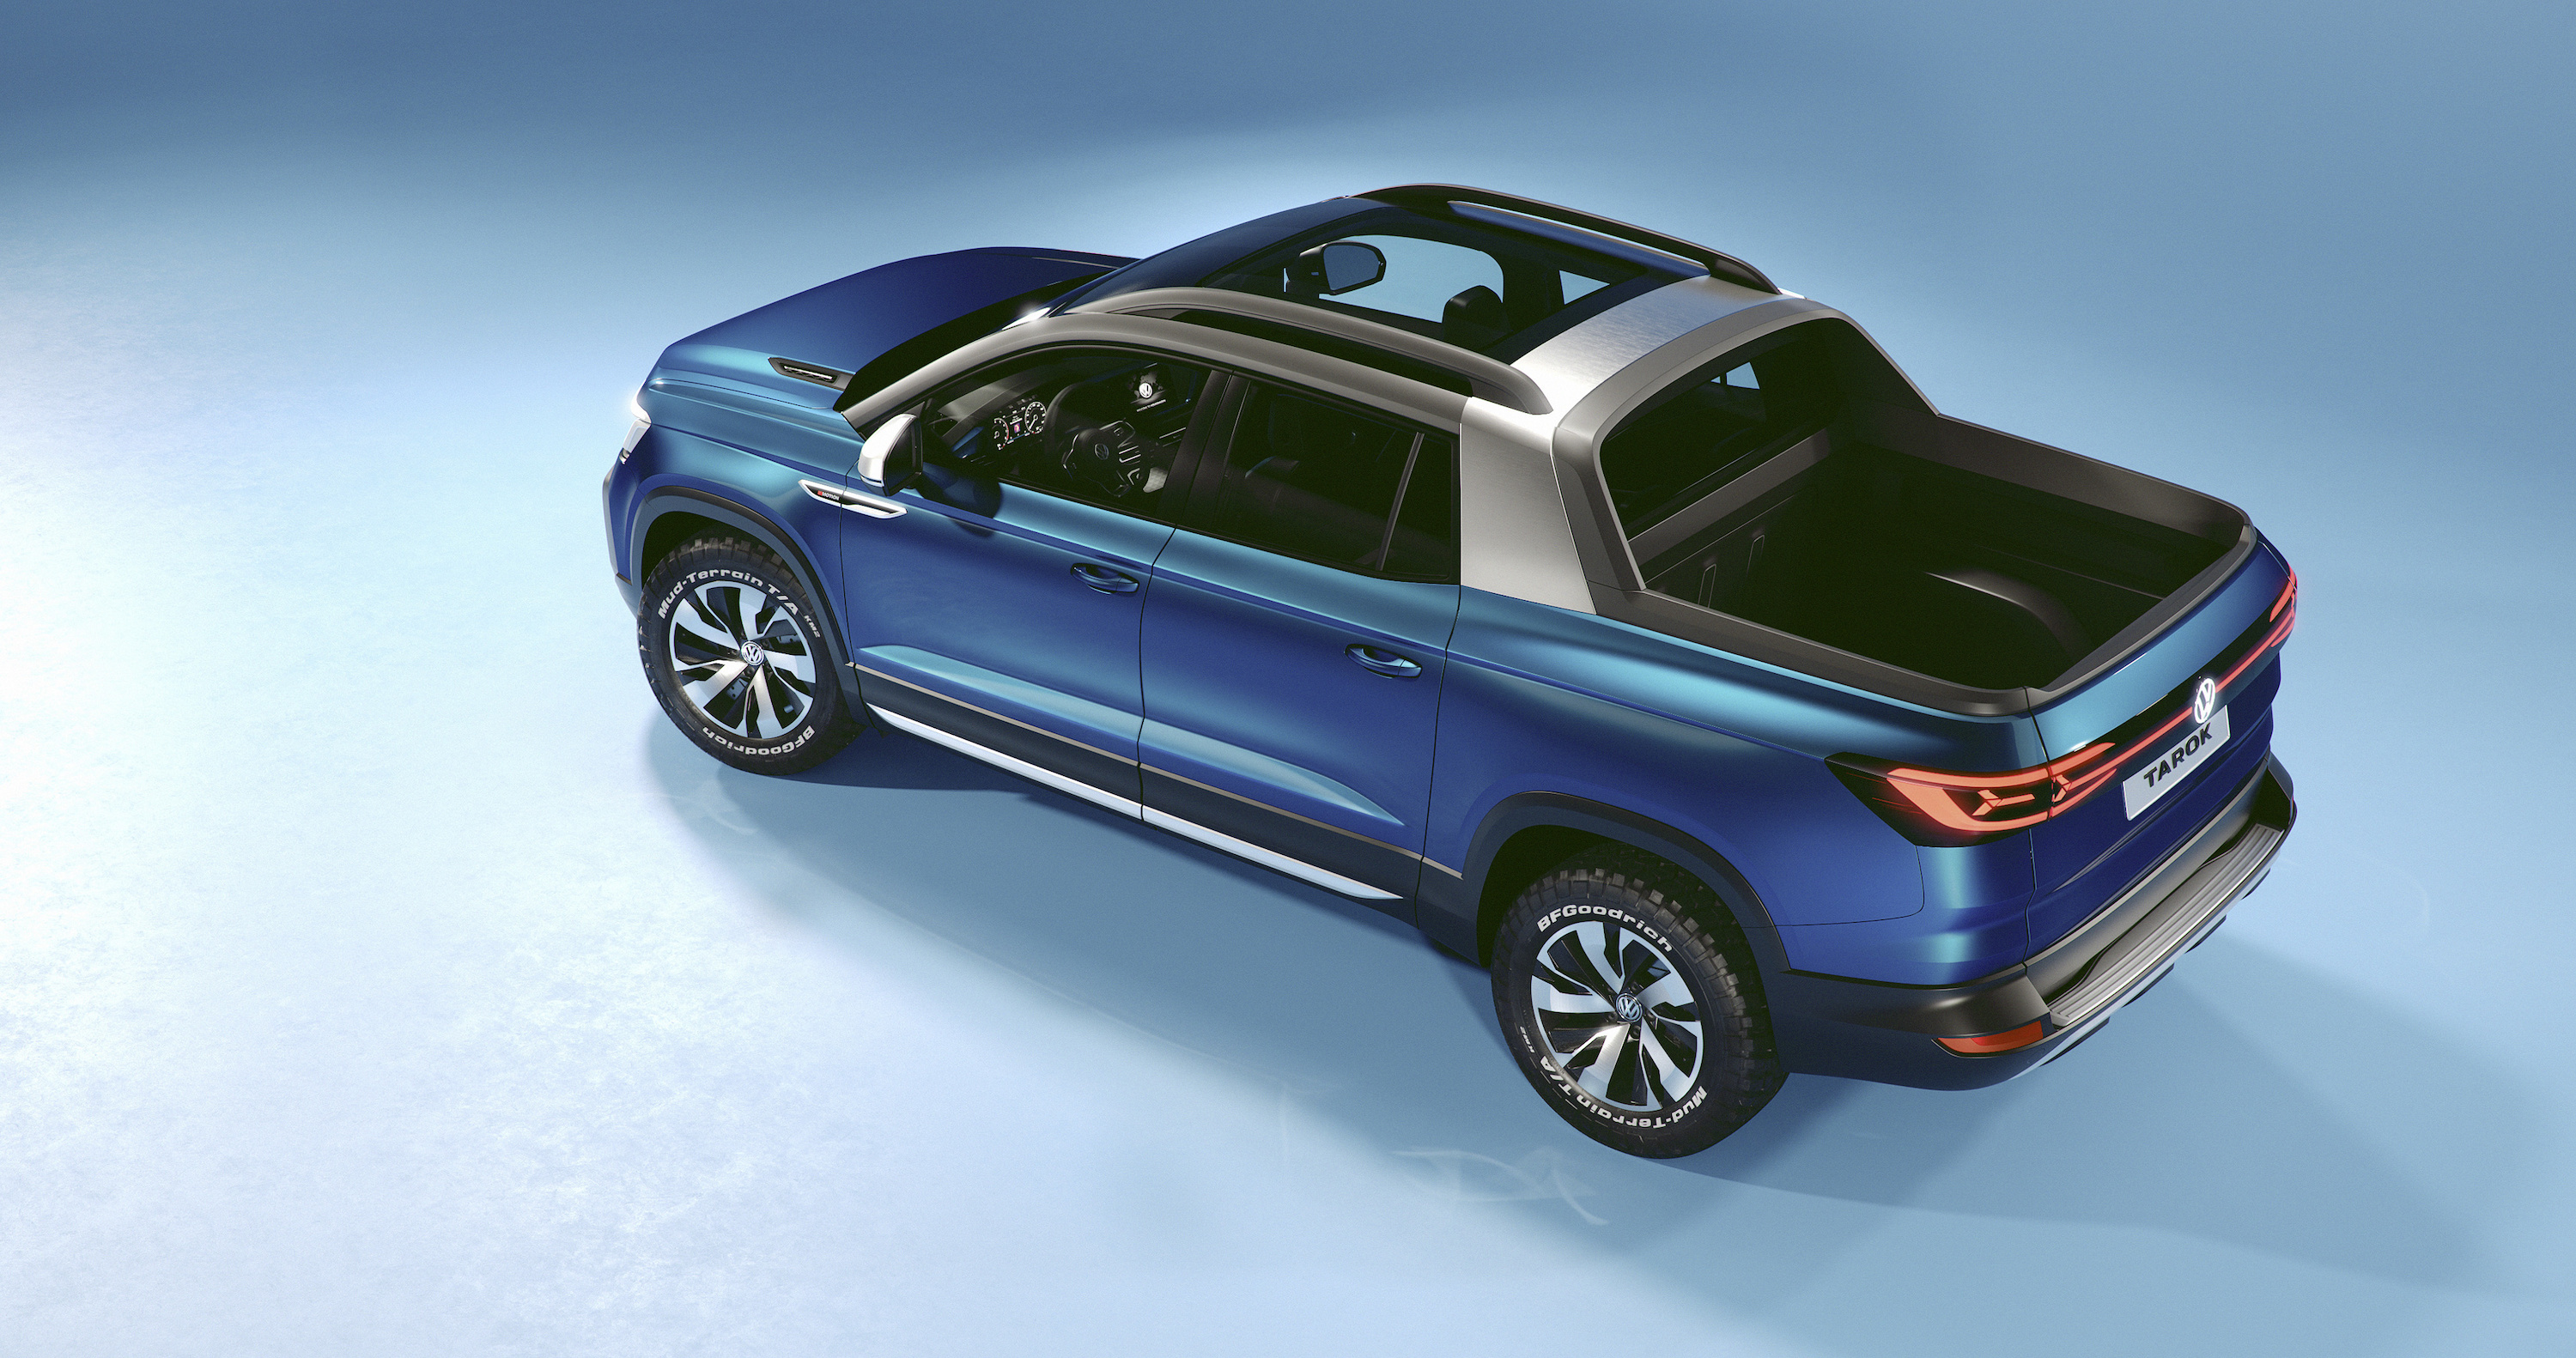 Volkswagen Cars in India » Prices, Models, Images, Reviews, vw car ... | 1582x3000